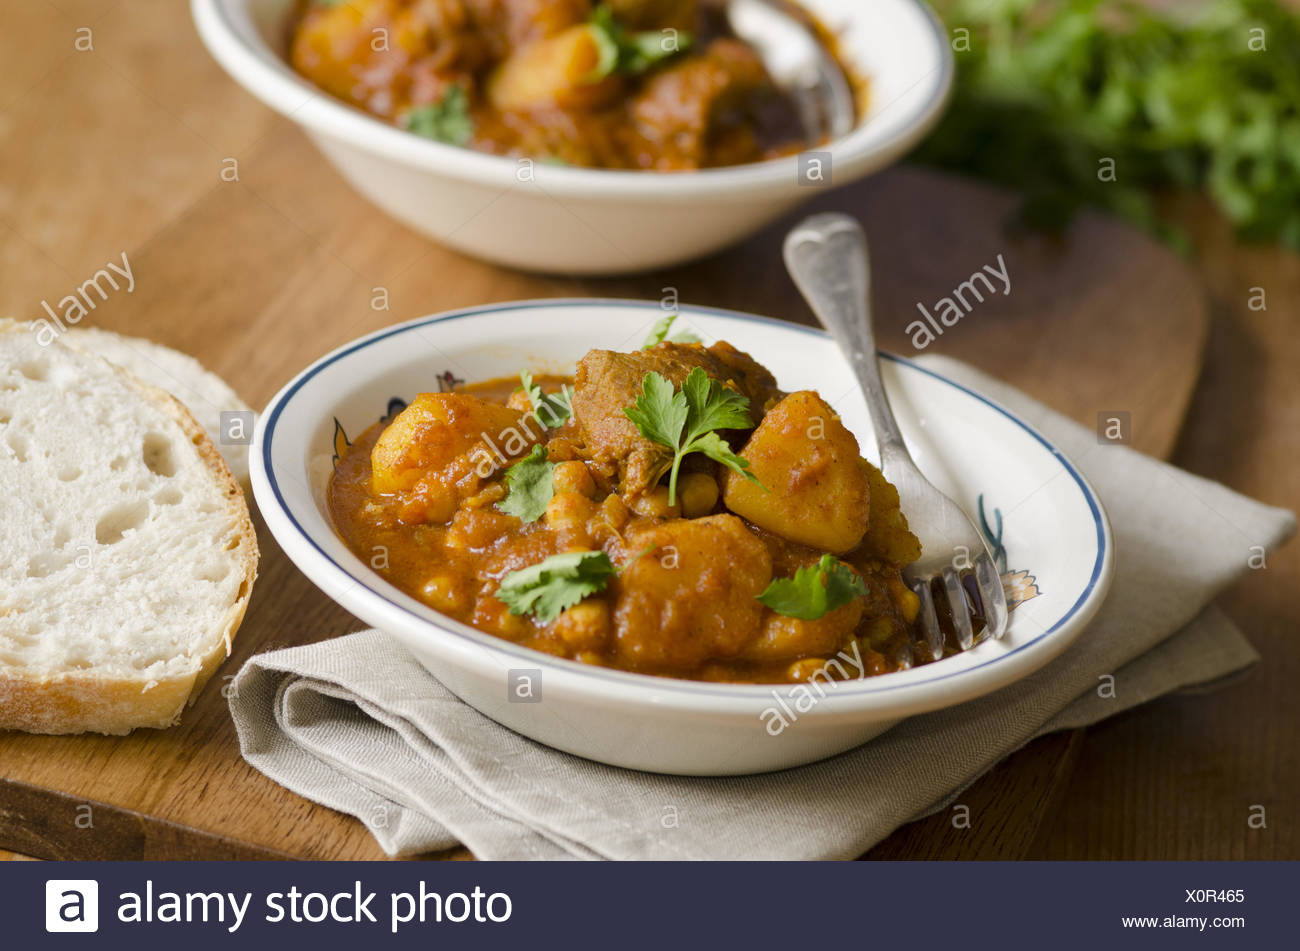 Delicious lamb curry with chickpeas in a bowl. - Stock Image